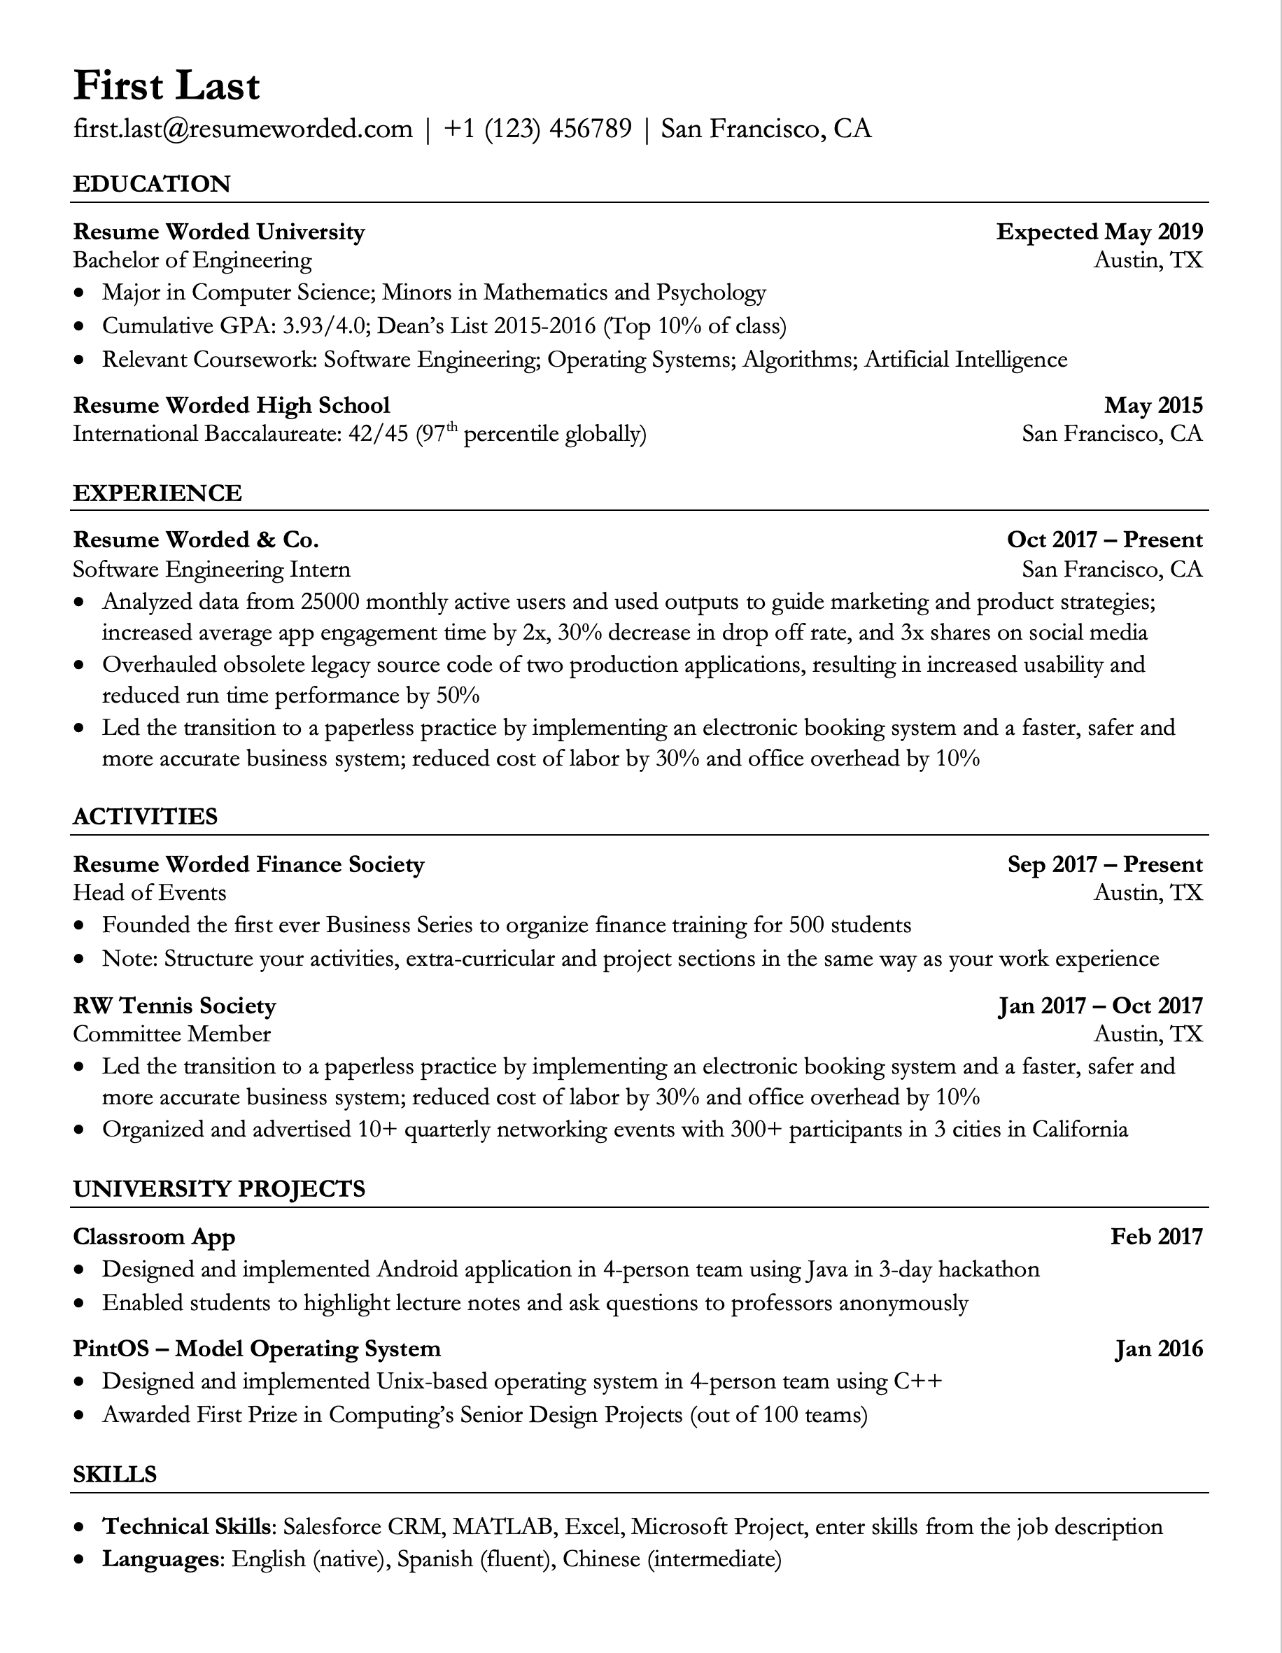 Alternate Resume Template For Students With Projects And Extracurriculars